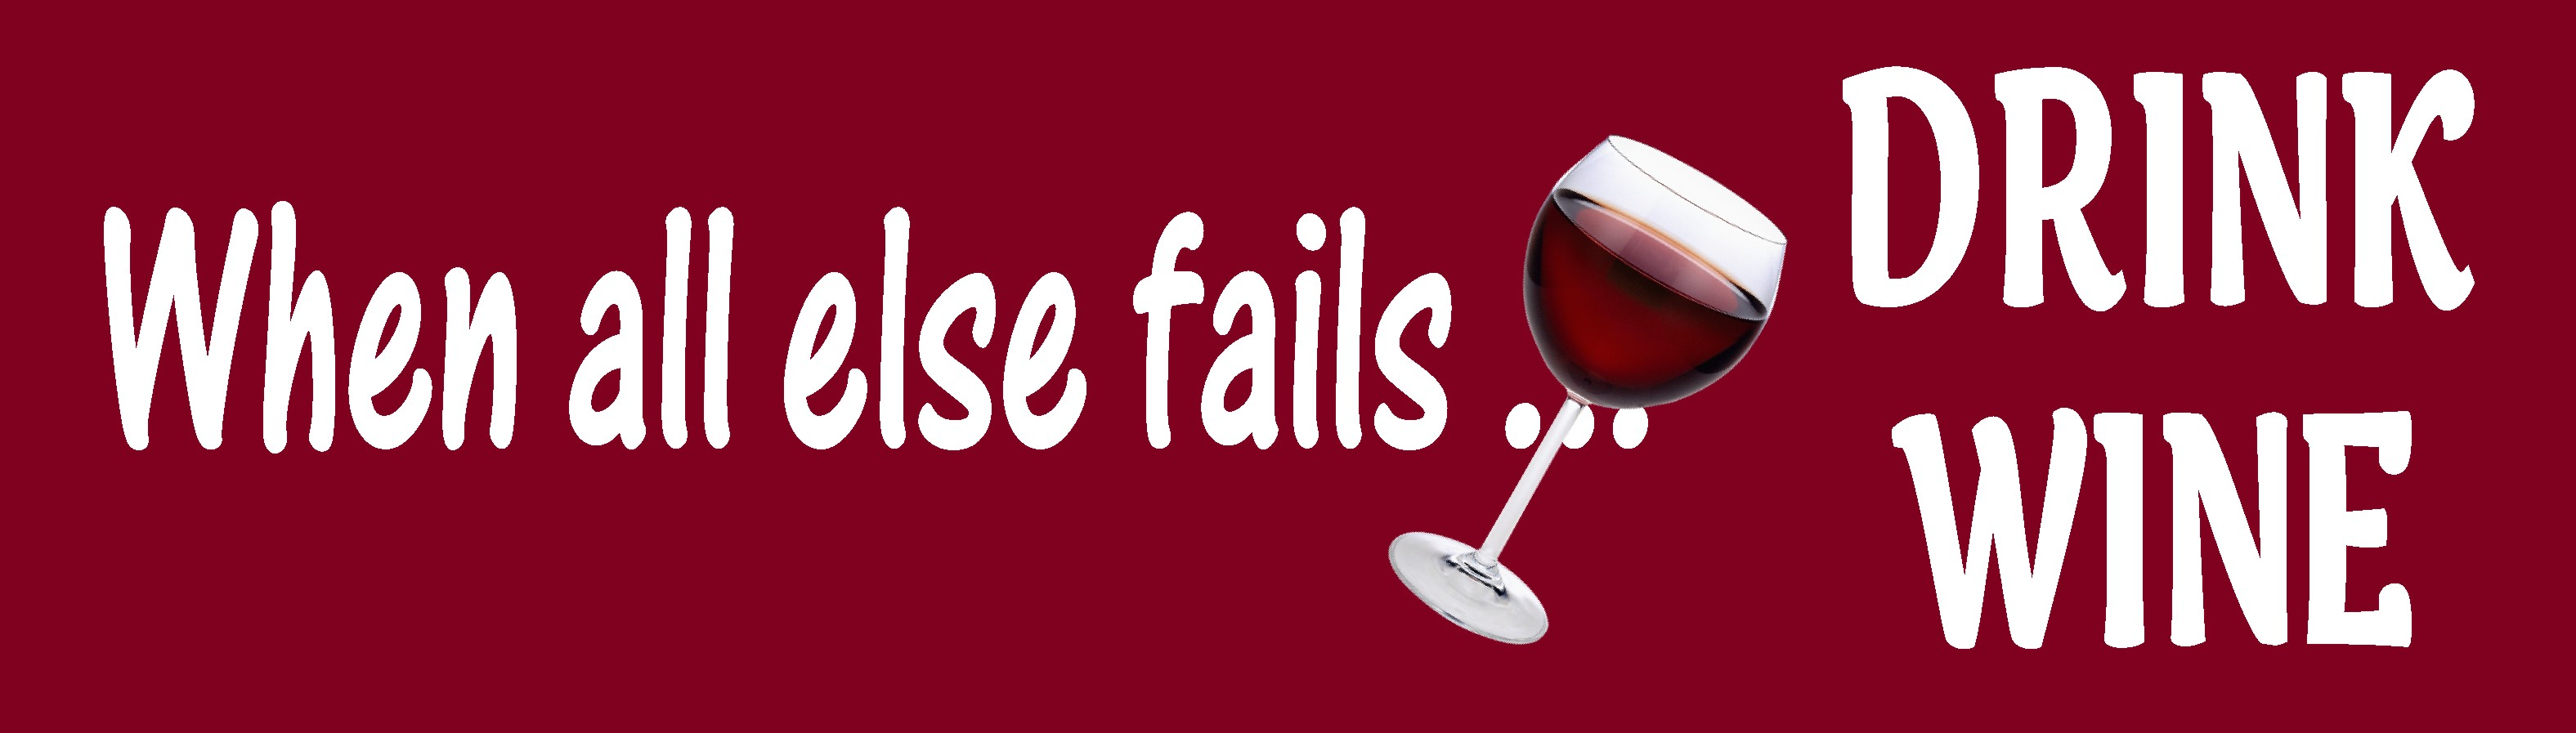 "WHEN ALL ELSE FAILS DRINK WINE 10.5"" X 3"" WOODEN BLOCK SIGN"